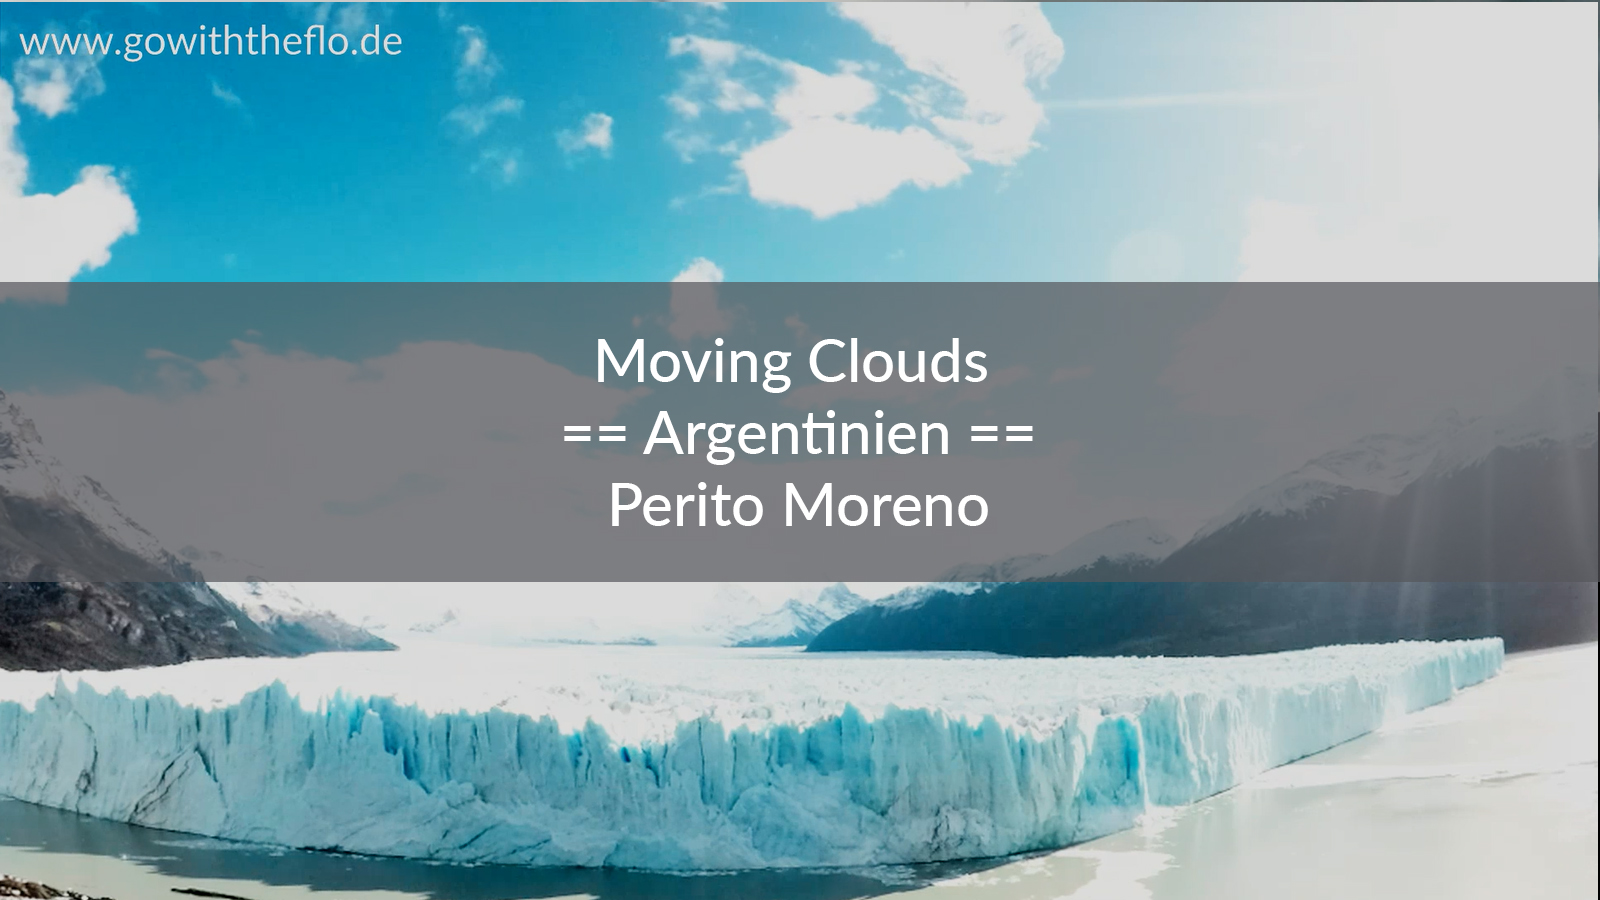 Argentinien – Moving Clouds at Glacier Perito Moreno